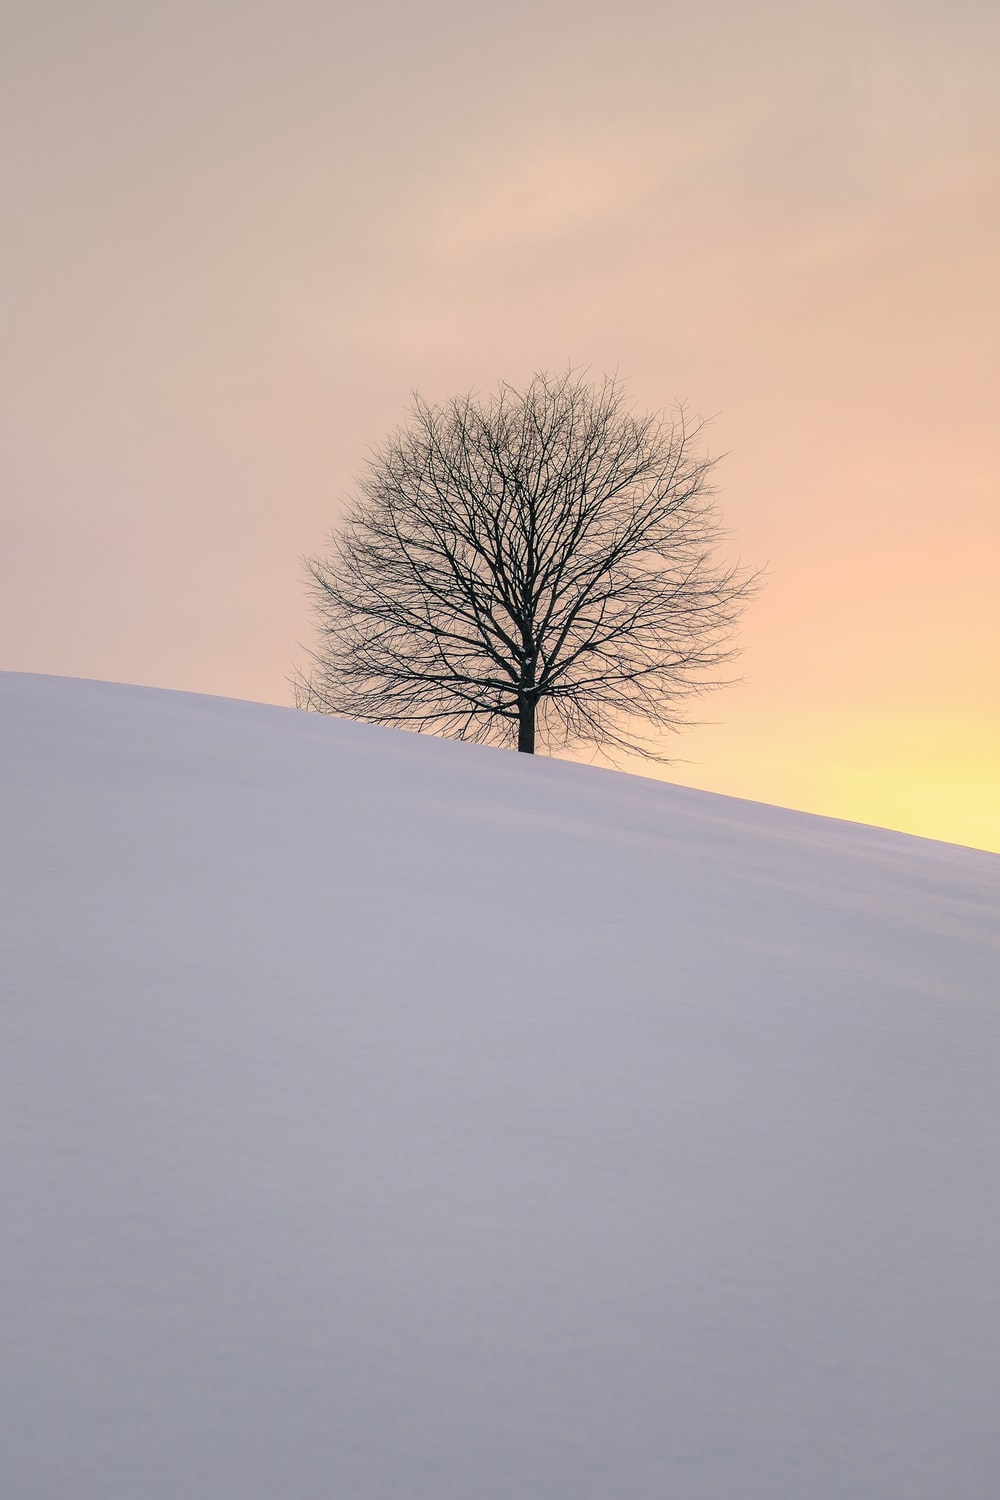 leafless tree on the hill